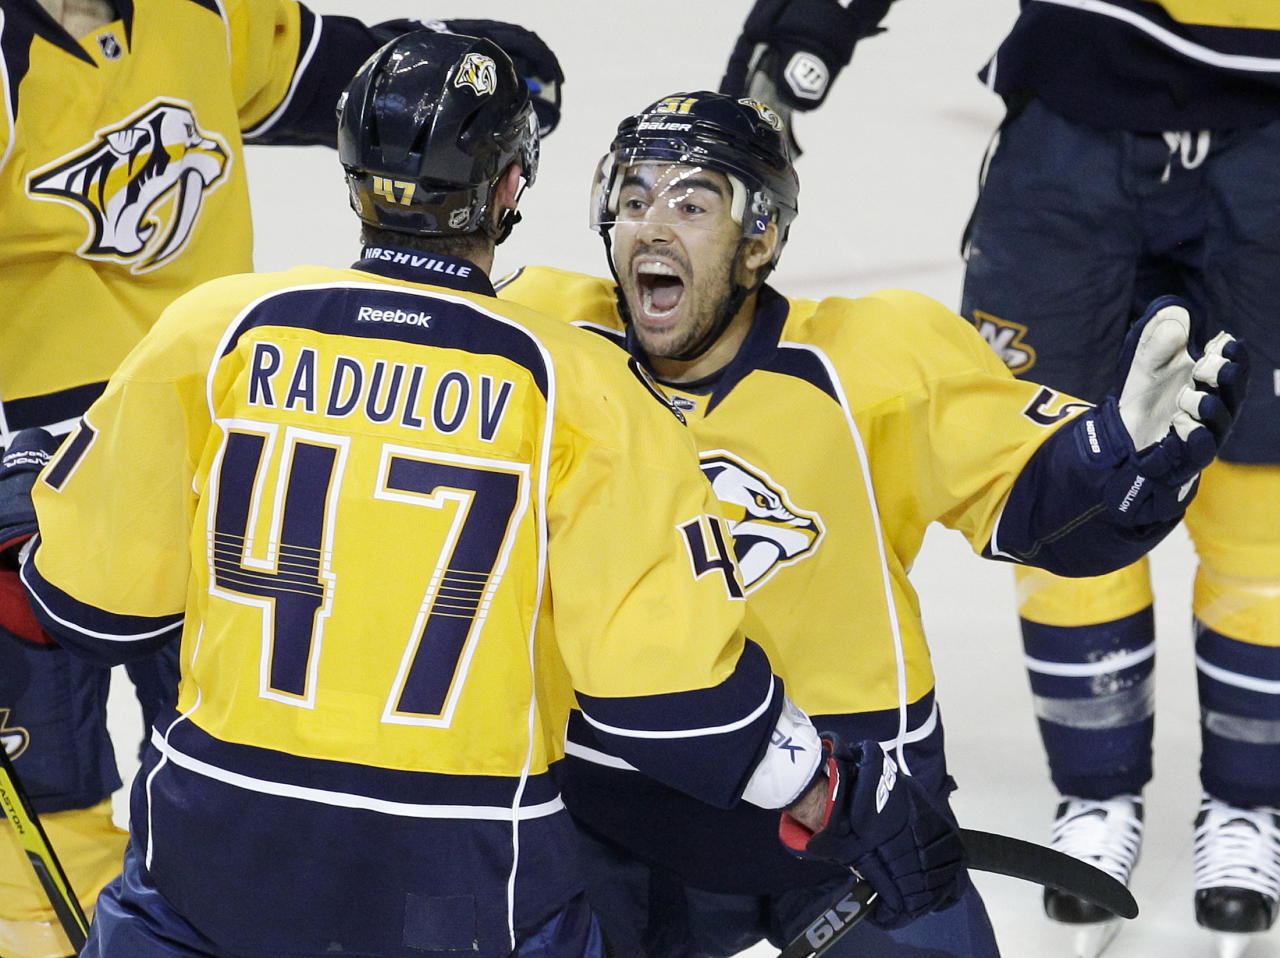 Nashville Predators defenseman Francis Bouillon, right, celebrates with Nashville Predators forward Alexander Radulov (47), of Russia, after Radulov scored against the Detroit Red Wings in the first period of Game 5 of a first-round NHL hockey playoff series on Friday, April 20, 2012, in Nashville, Tenn. (AP Photo/Mark Humphrey)